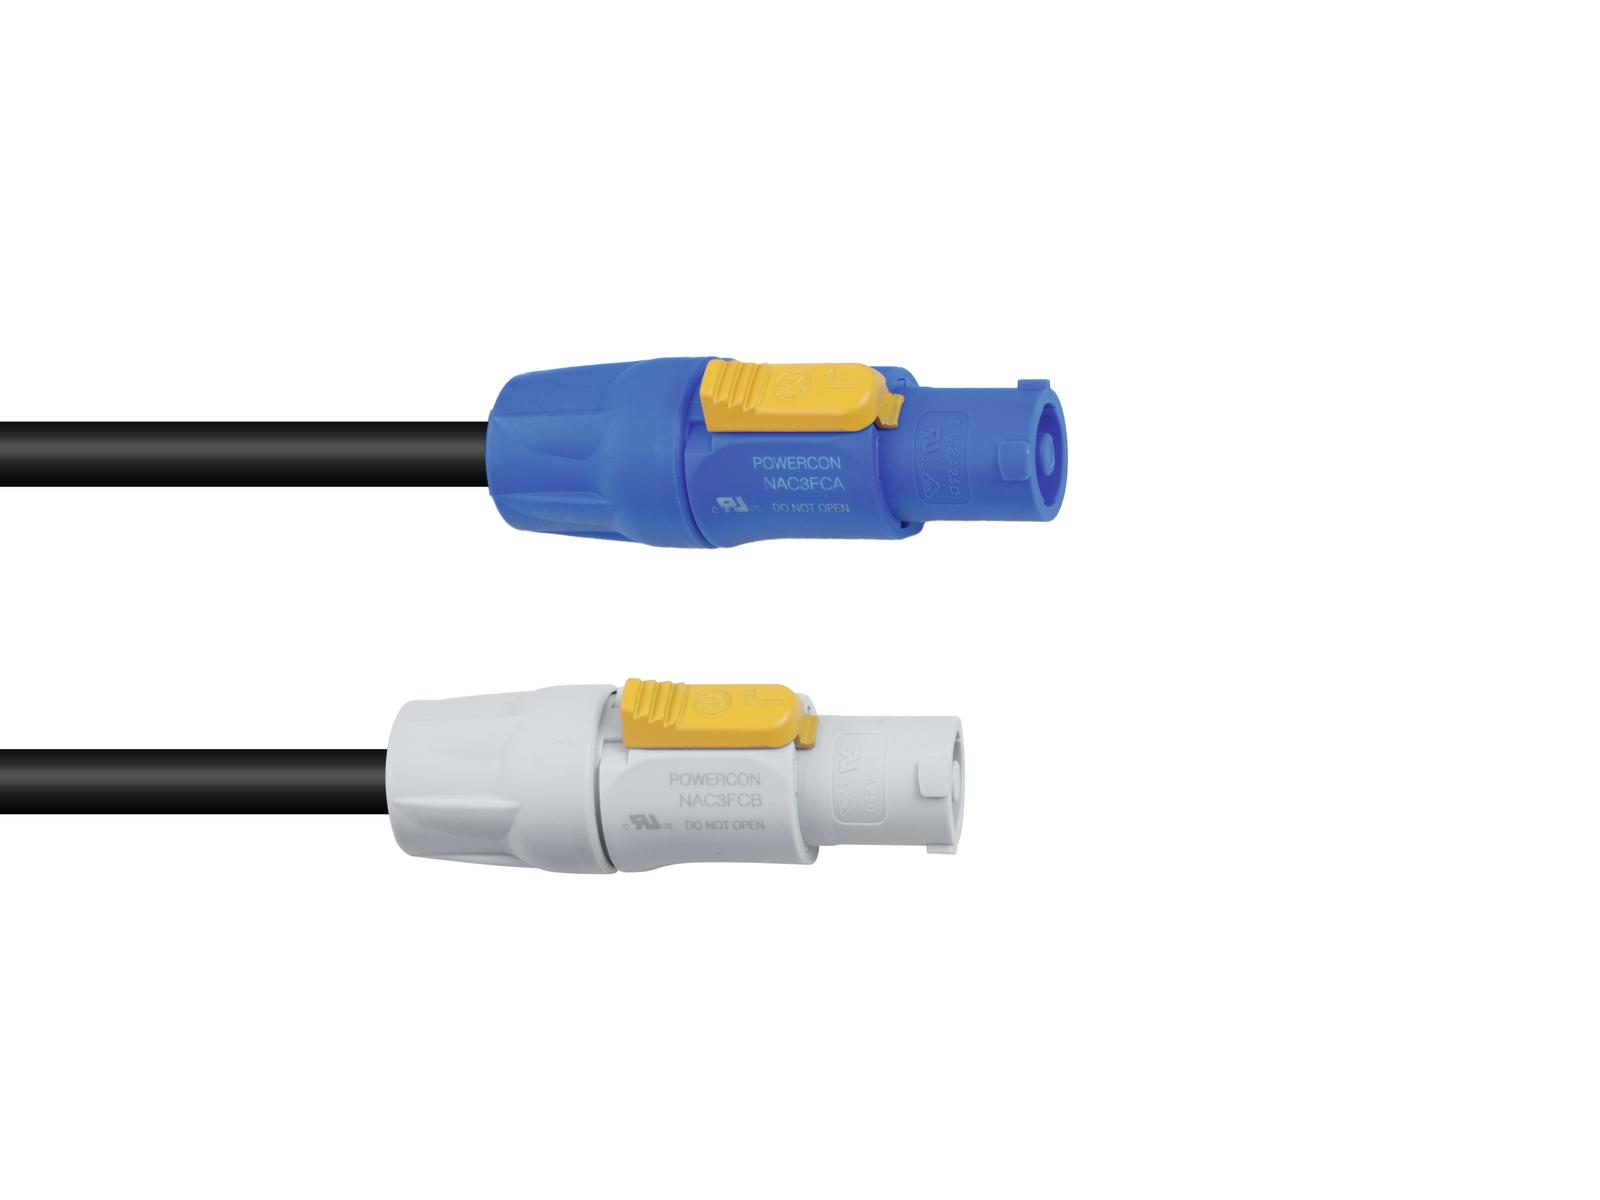 Power cable PSSO PowerCon 3x1.